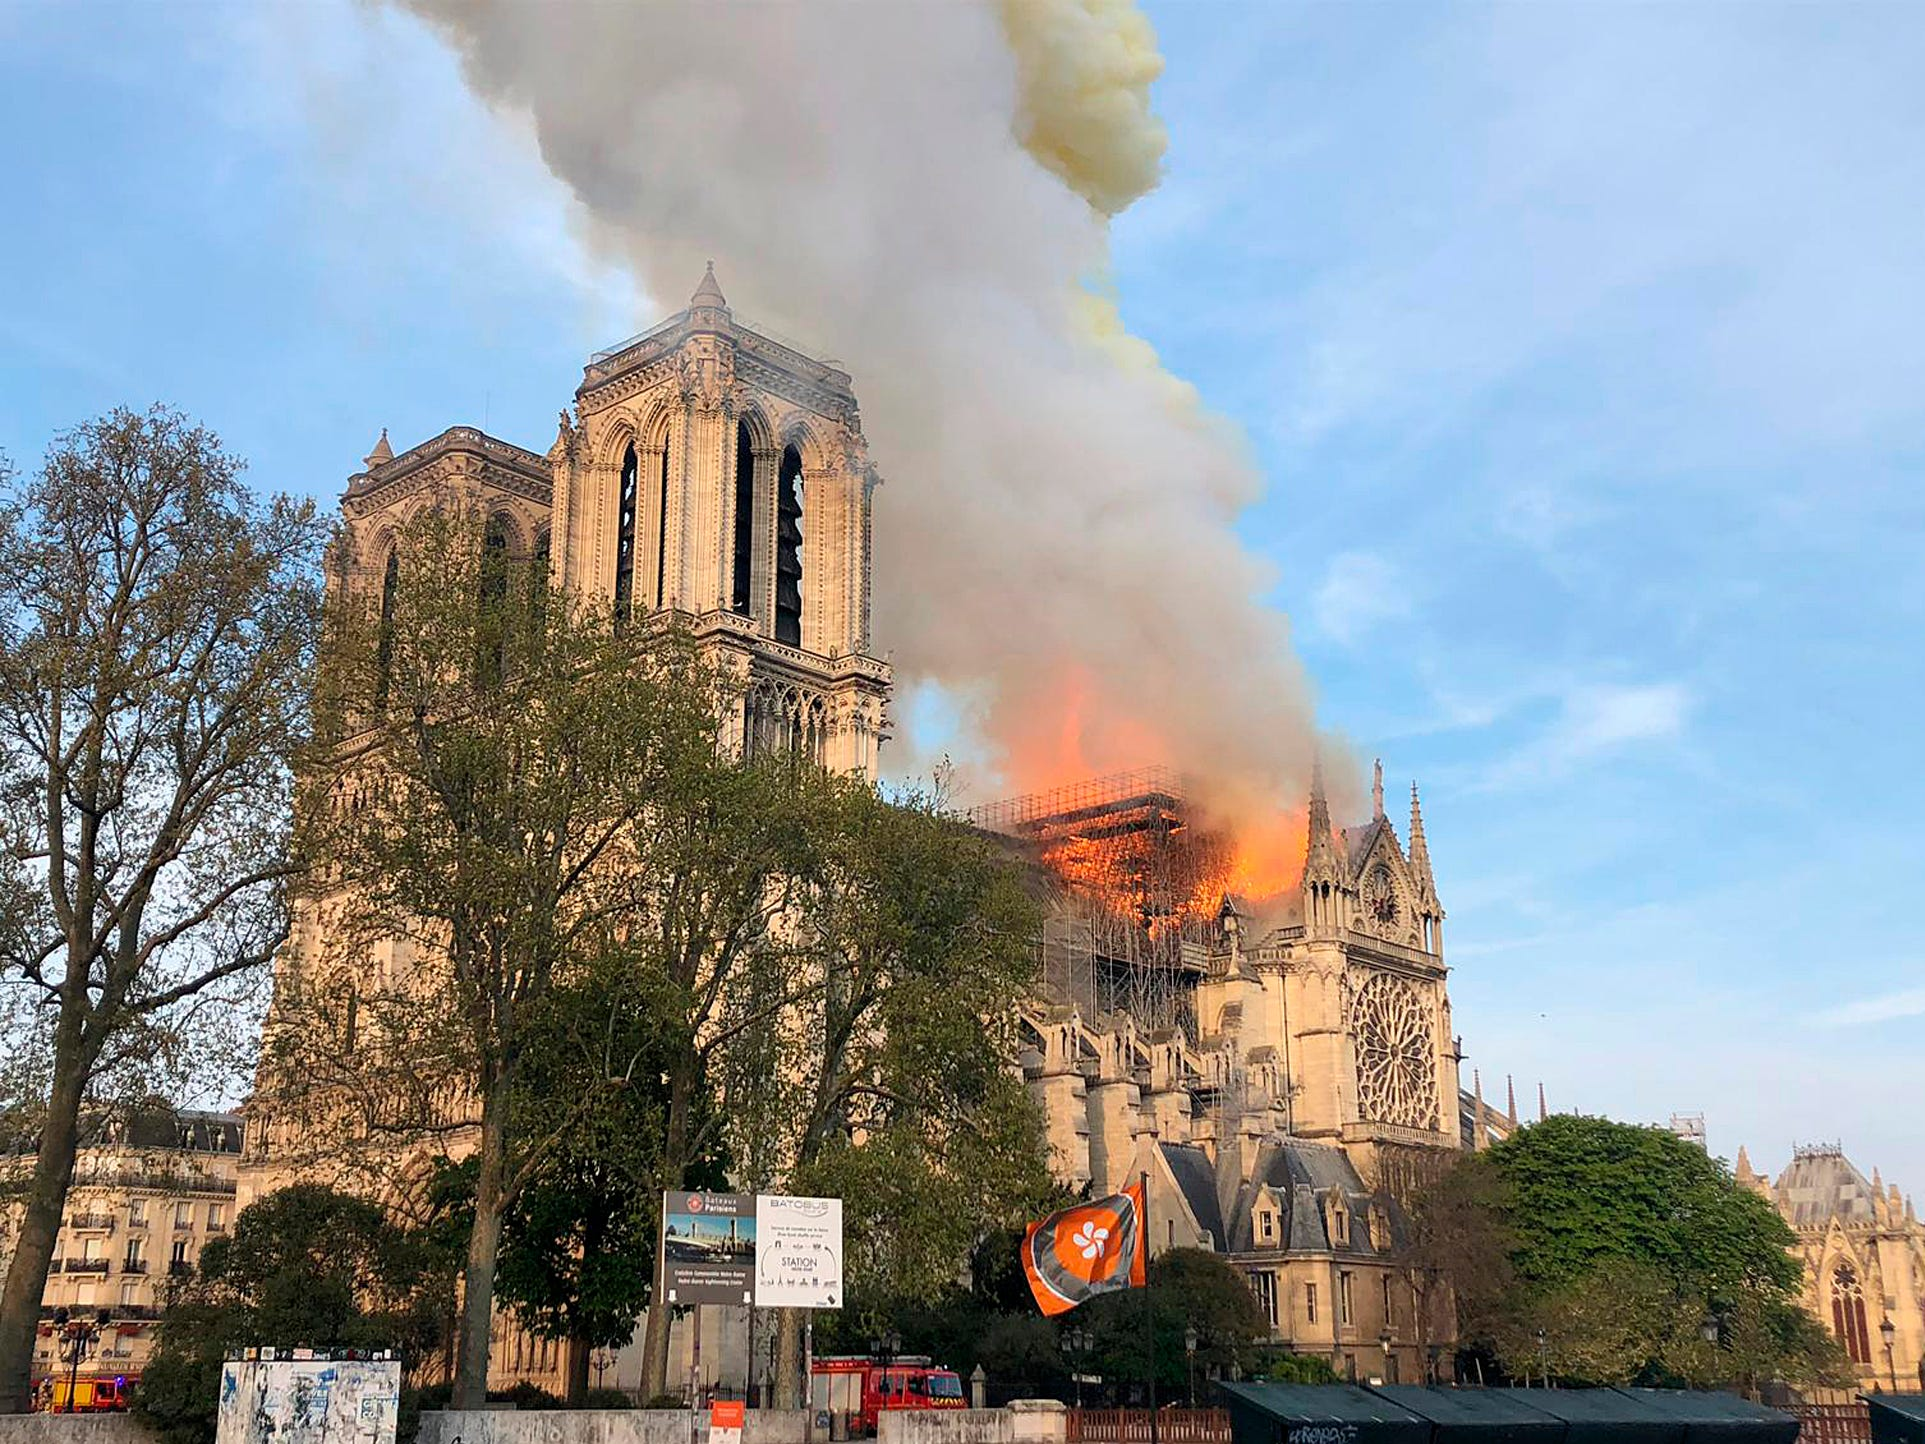 Notre Dame Cathedral is burning in Paris on Monday, April 15, 2019. Massive plumes of yellow brown smoke is filling the air above Notre Dame Cathedral and ash is falling on tourists and others around the island that marks the center of Paris.